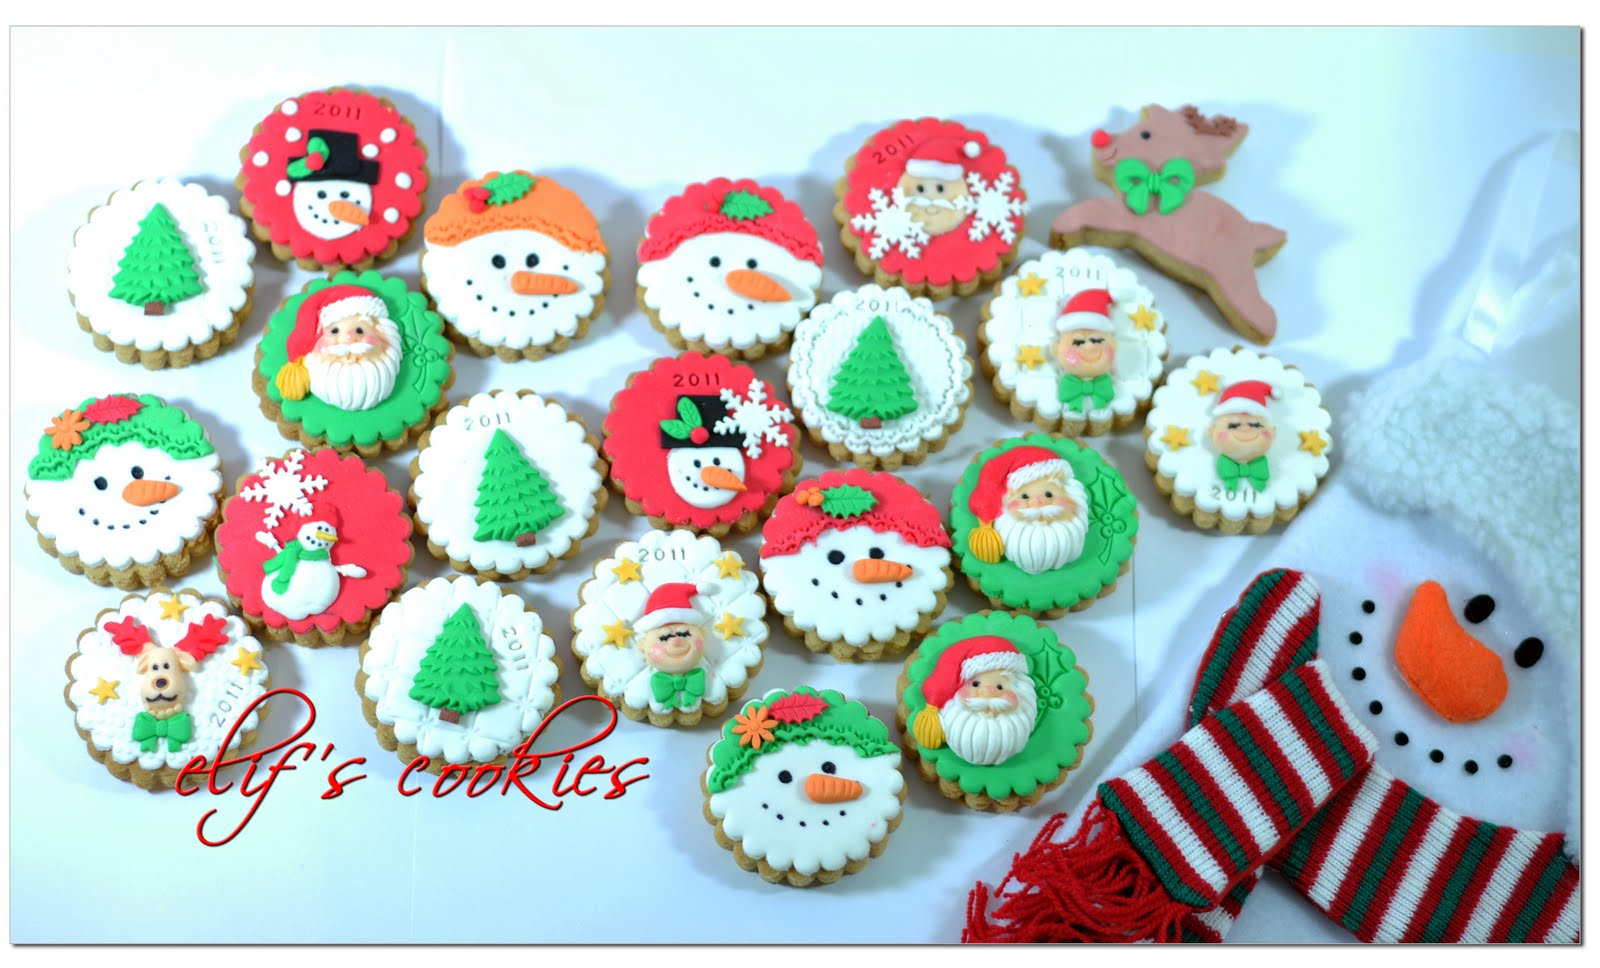 Bake christmas cookies every day every night thousand to deliver